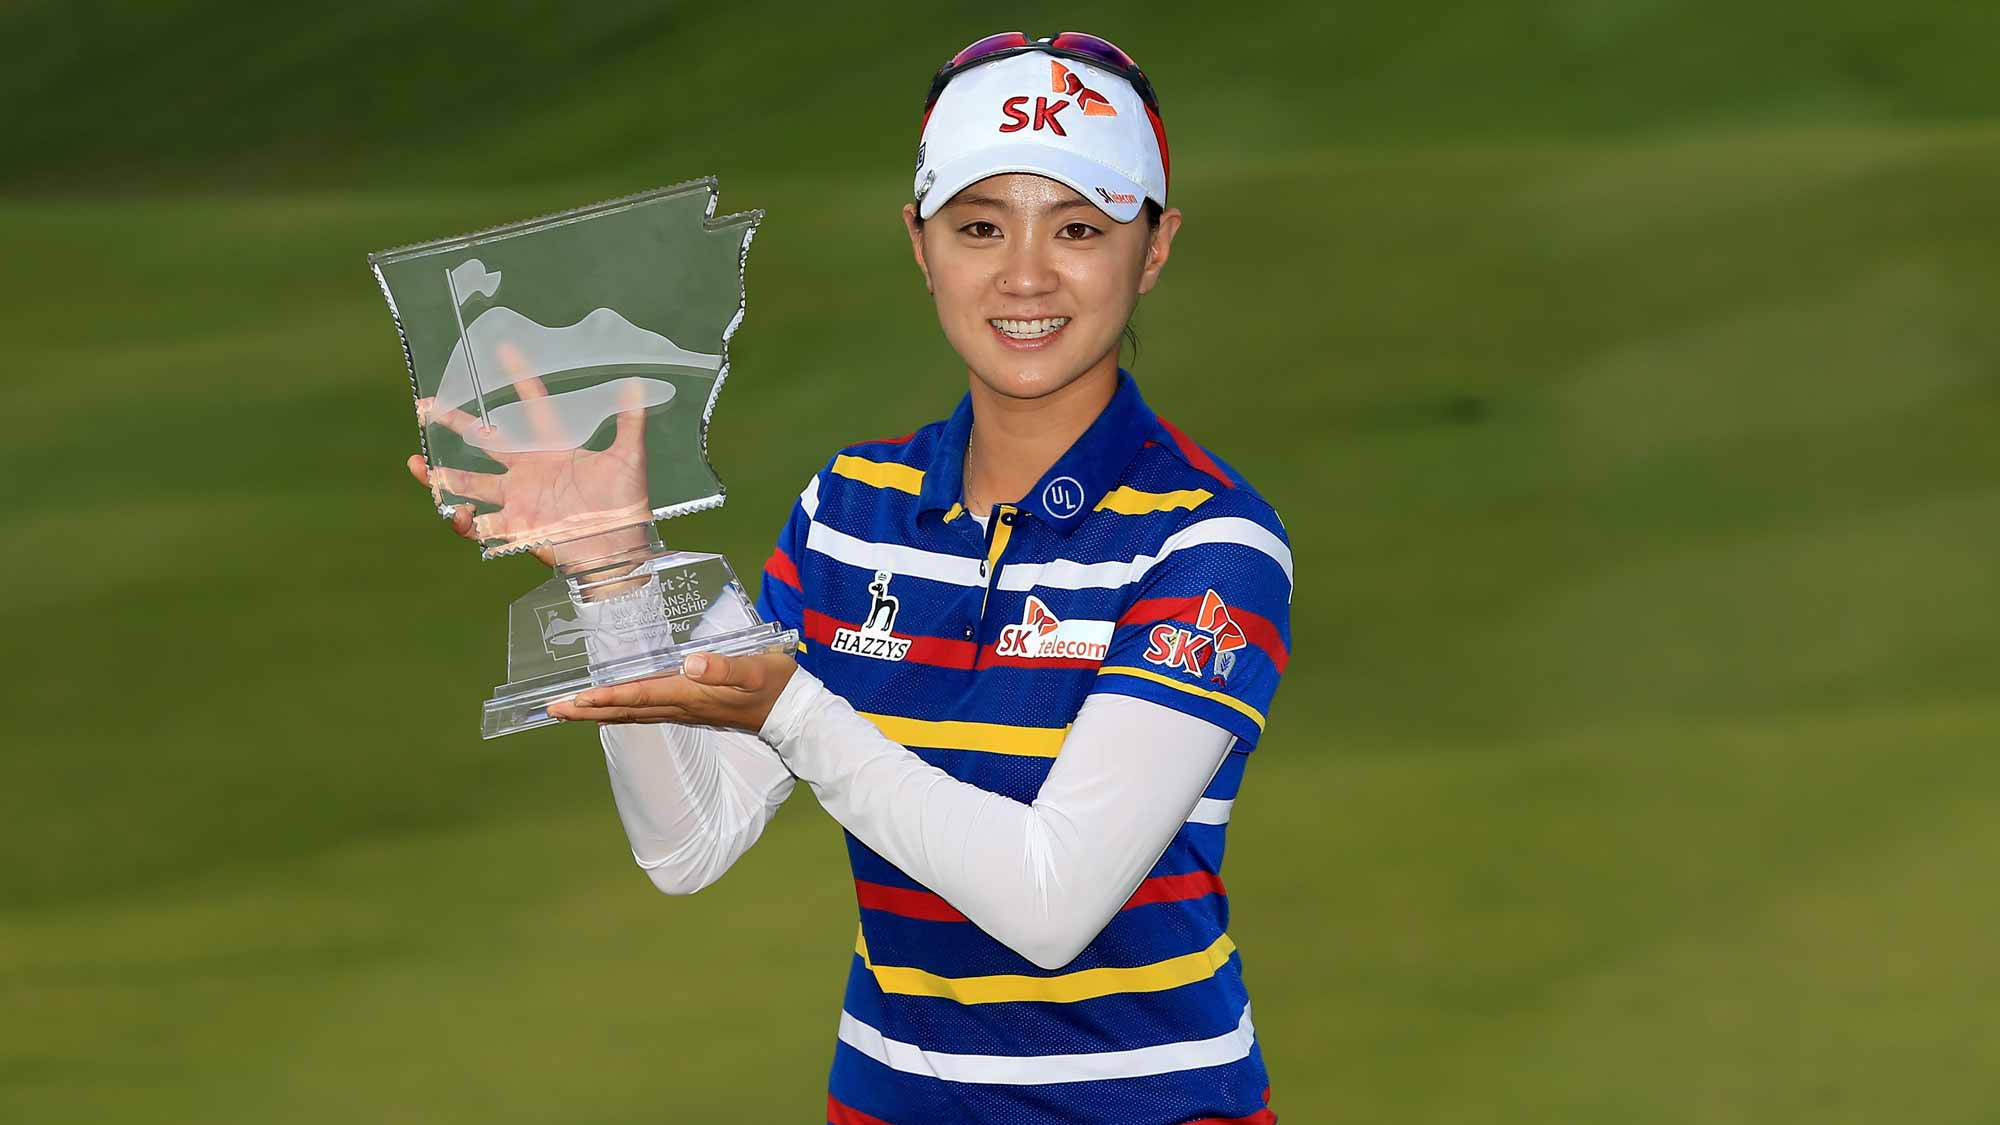 Na Yeon Choi of South Korea poses with the trophy after winning the Walmart NW Arkansas Championship Presented by P&G at Pinnacle Country Club